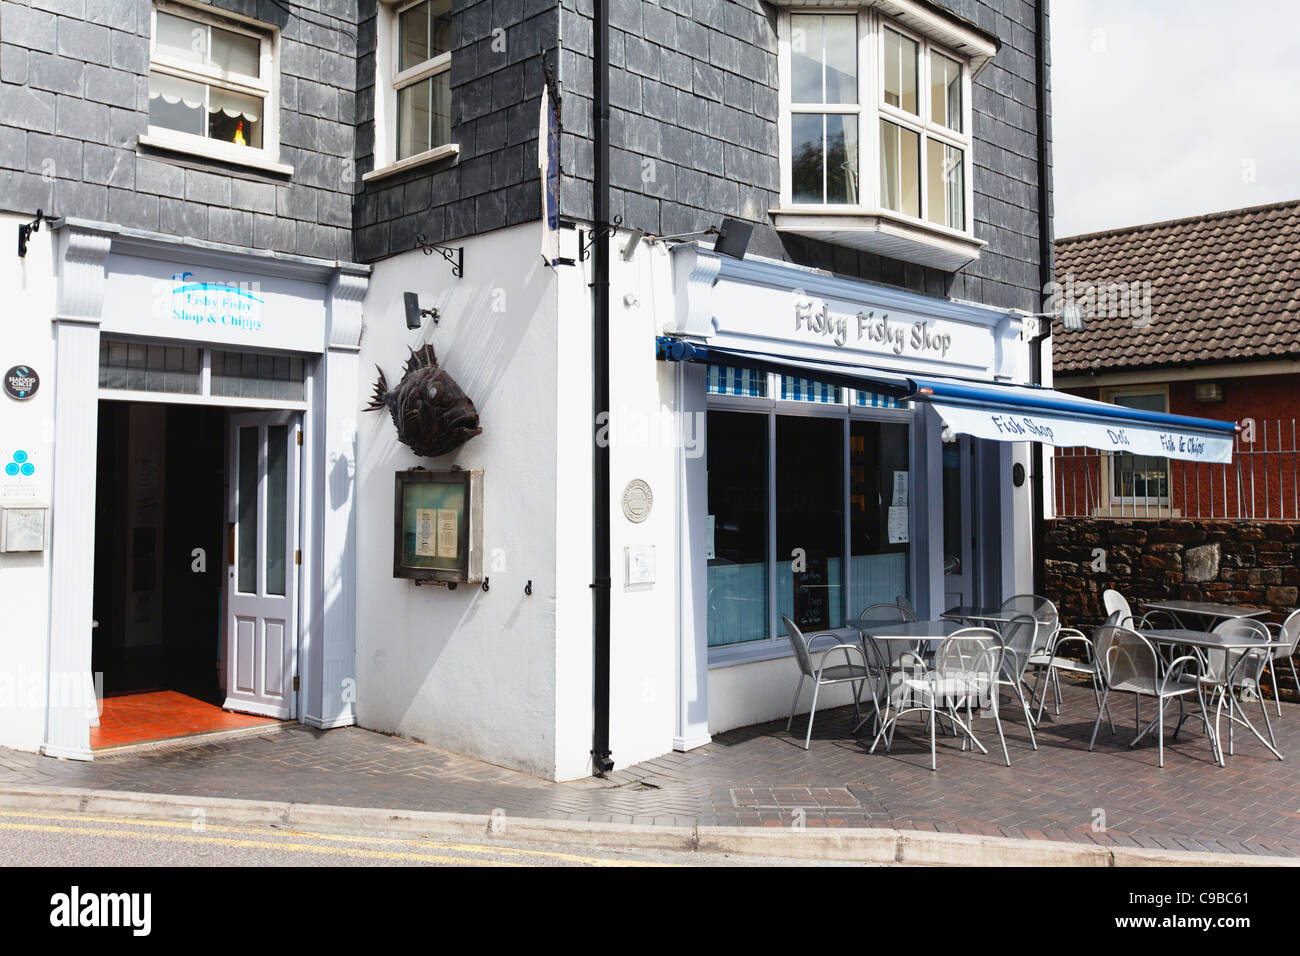 Exterior View of the Fishy Fishy Shop Seafood Bistro, Kinsale County Cork, Republic of Ireland - Stock Image